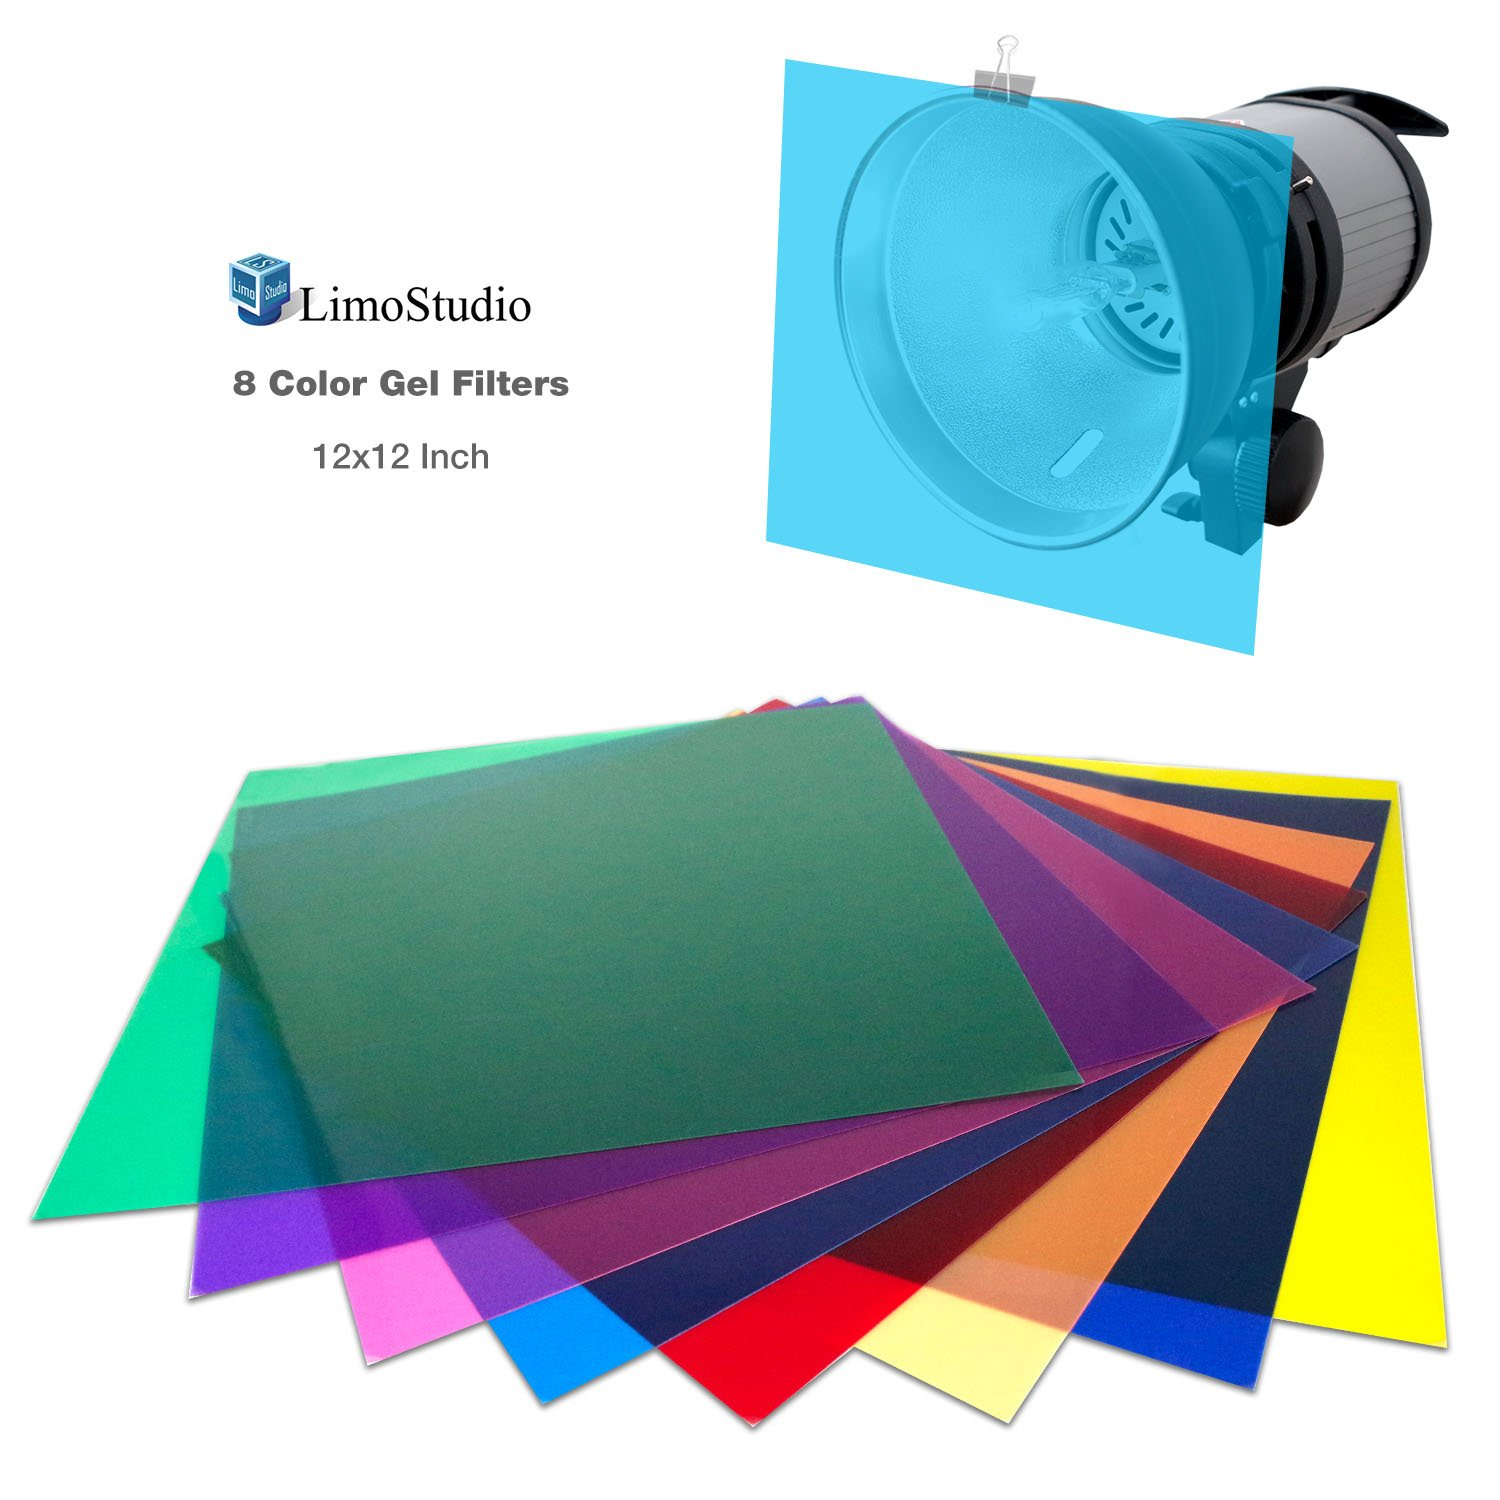 LimoStudio 12 x 12 inch, 8 pcs Color Gel Lighting Filter Transparent Color Film, Plastic Sheets for Camera Flash Light, AGG2555 by LS LIMO STUDIO LIMOSTUDIO